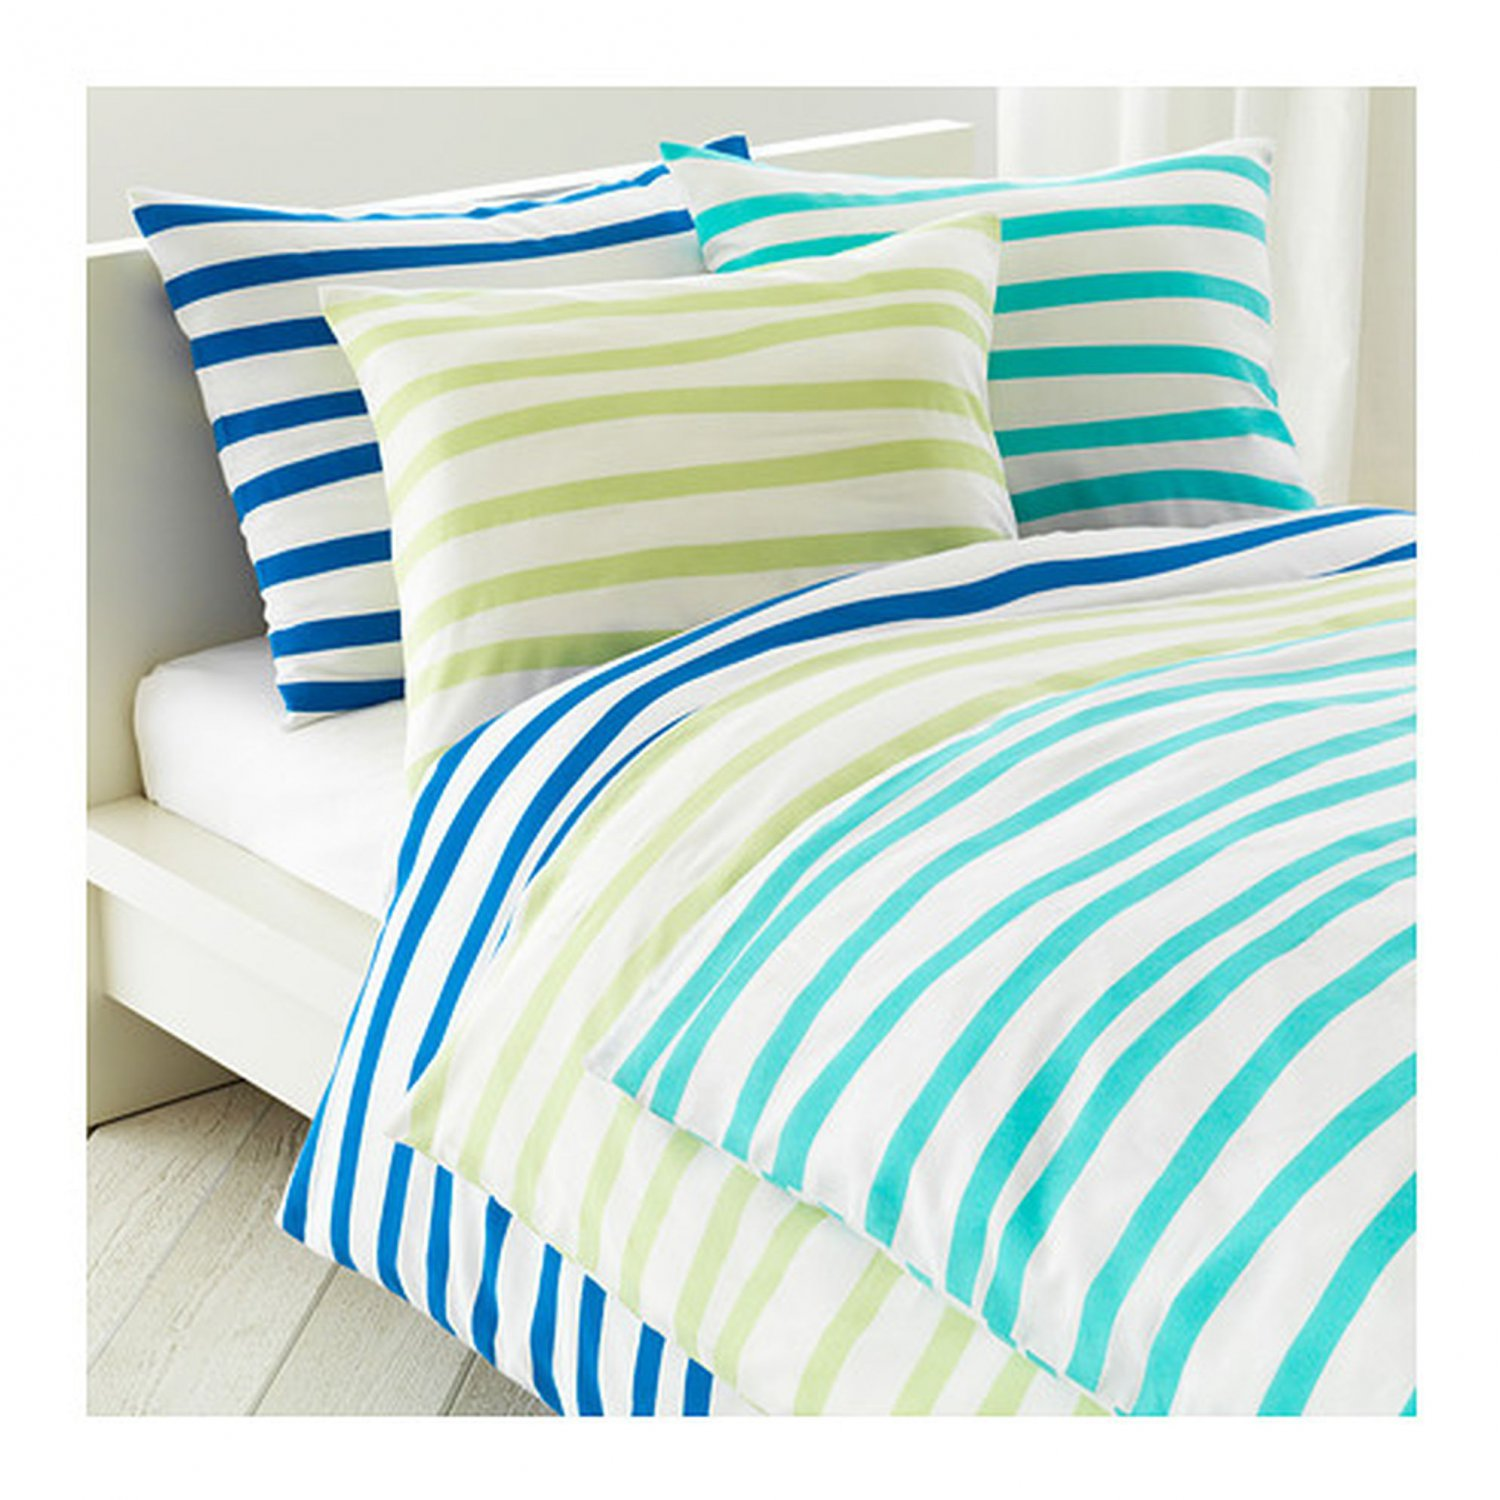 ikea springkorn queen full duvet cover set wavy striped turquoise white